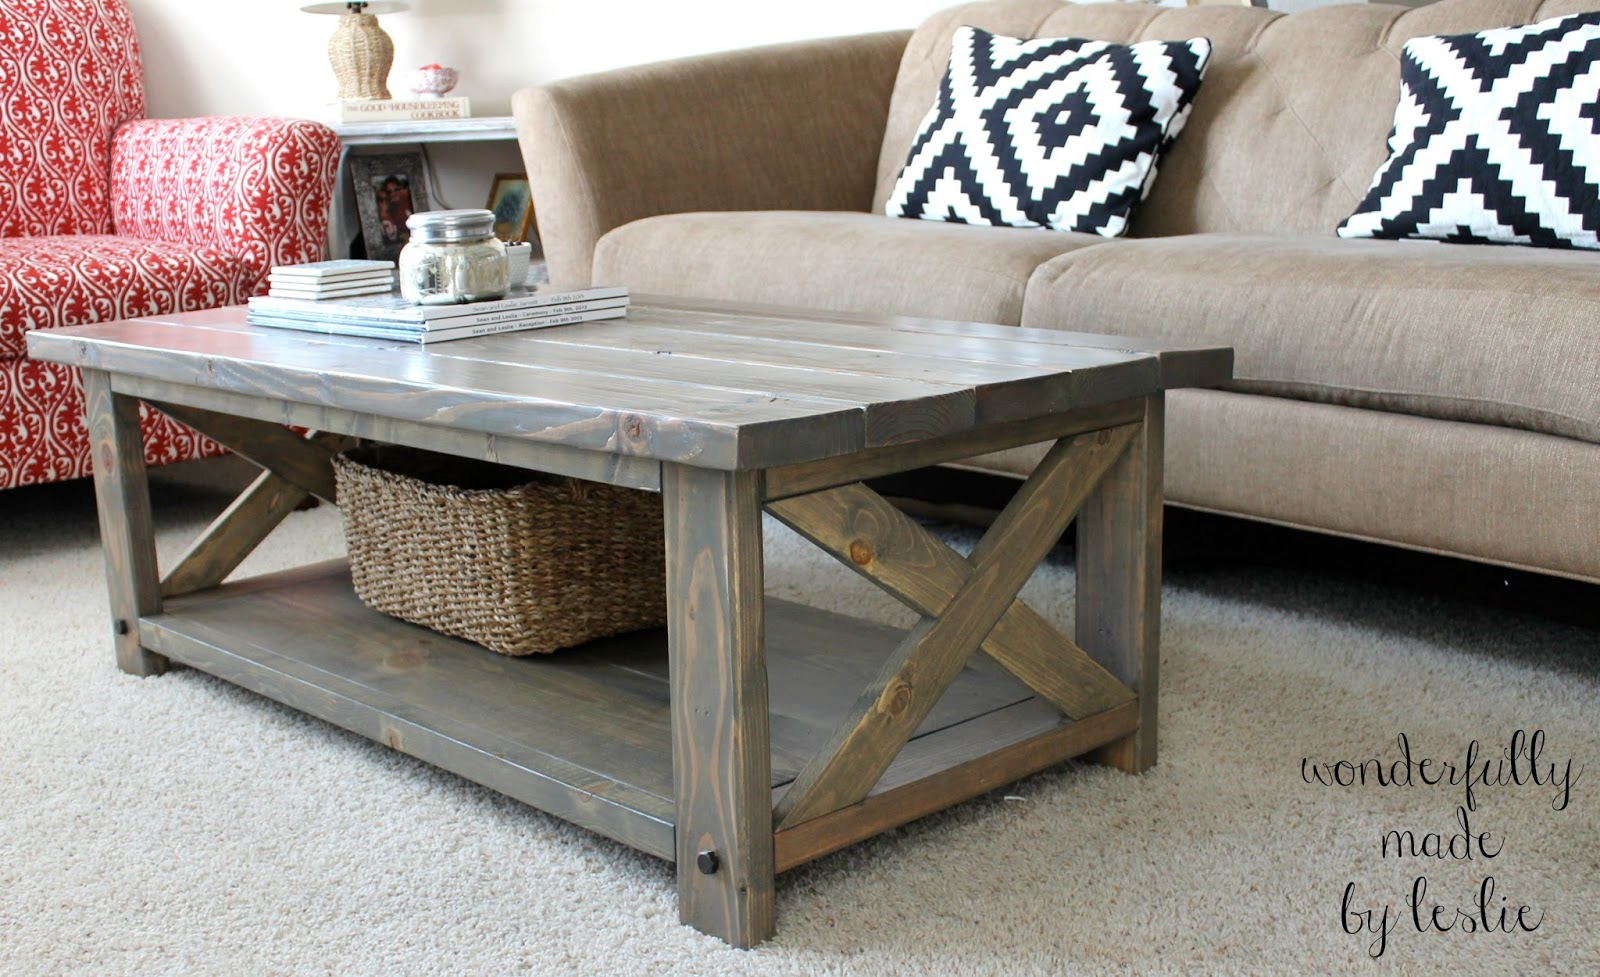 Wonderfully Made Finished Diy Coffee Table